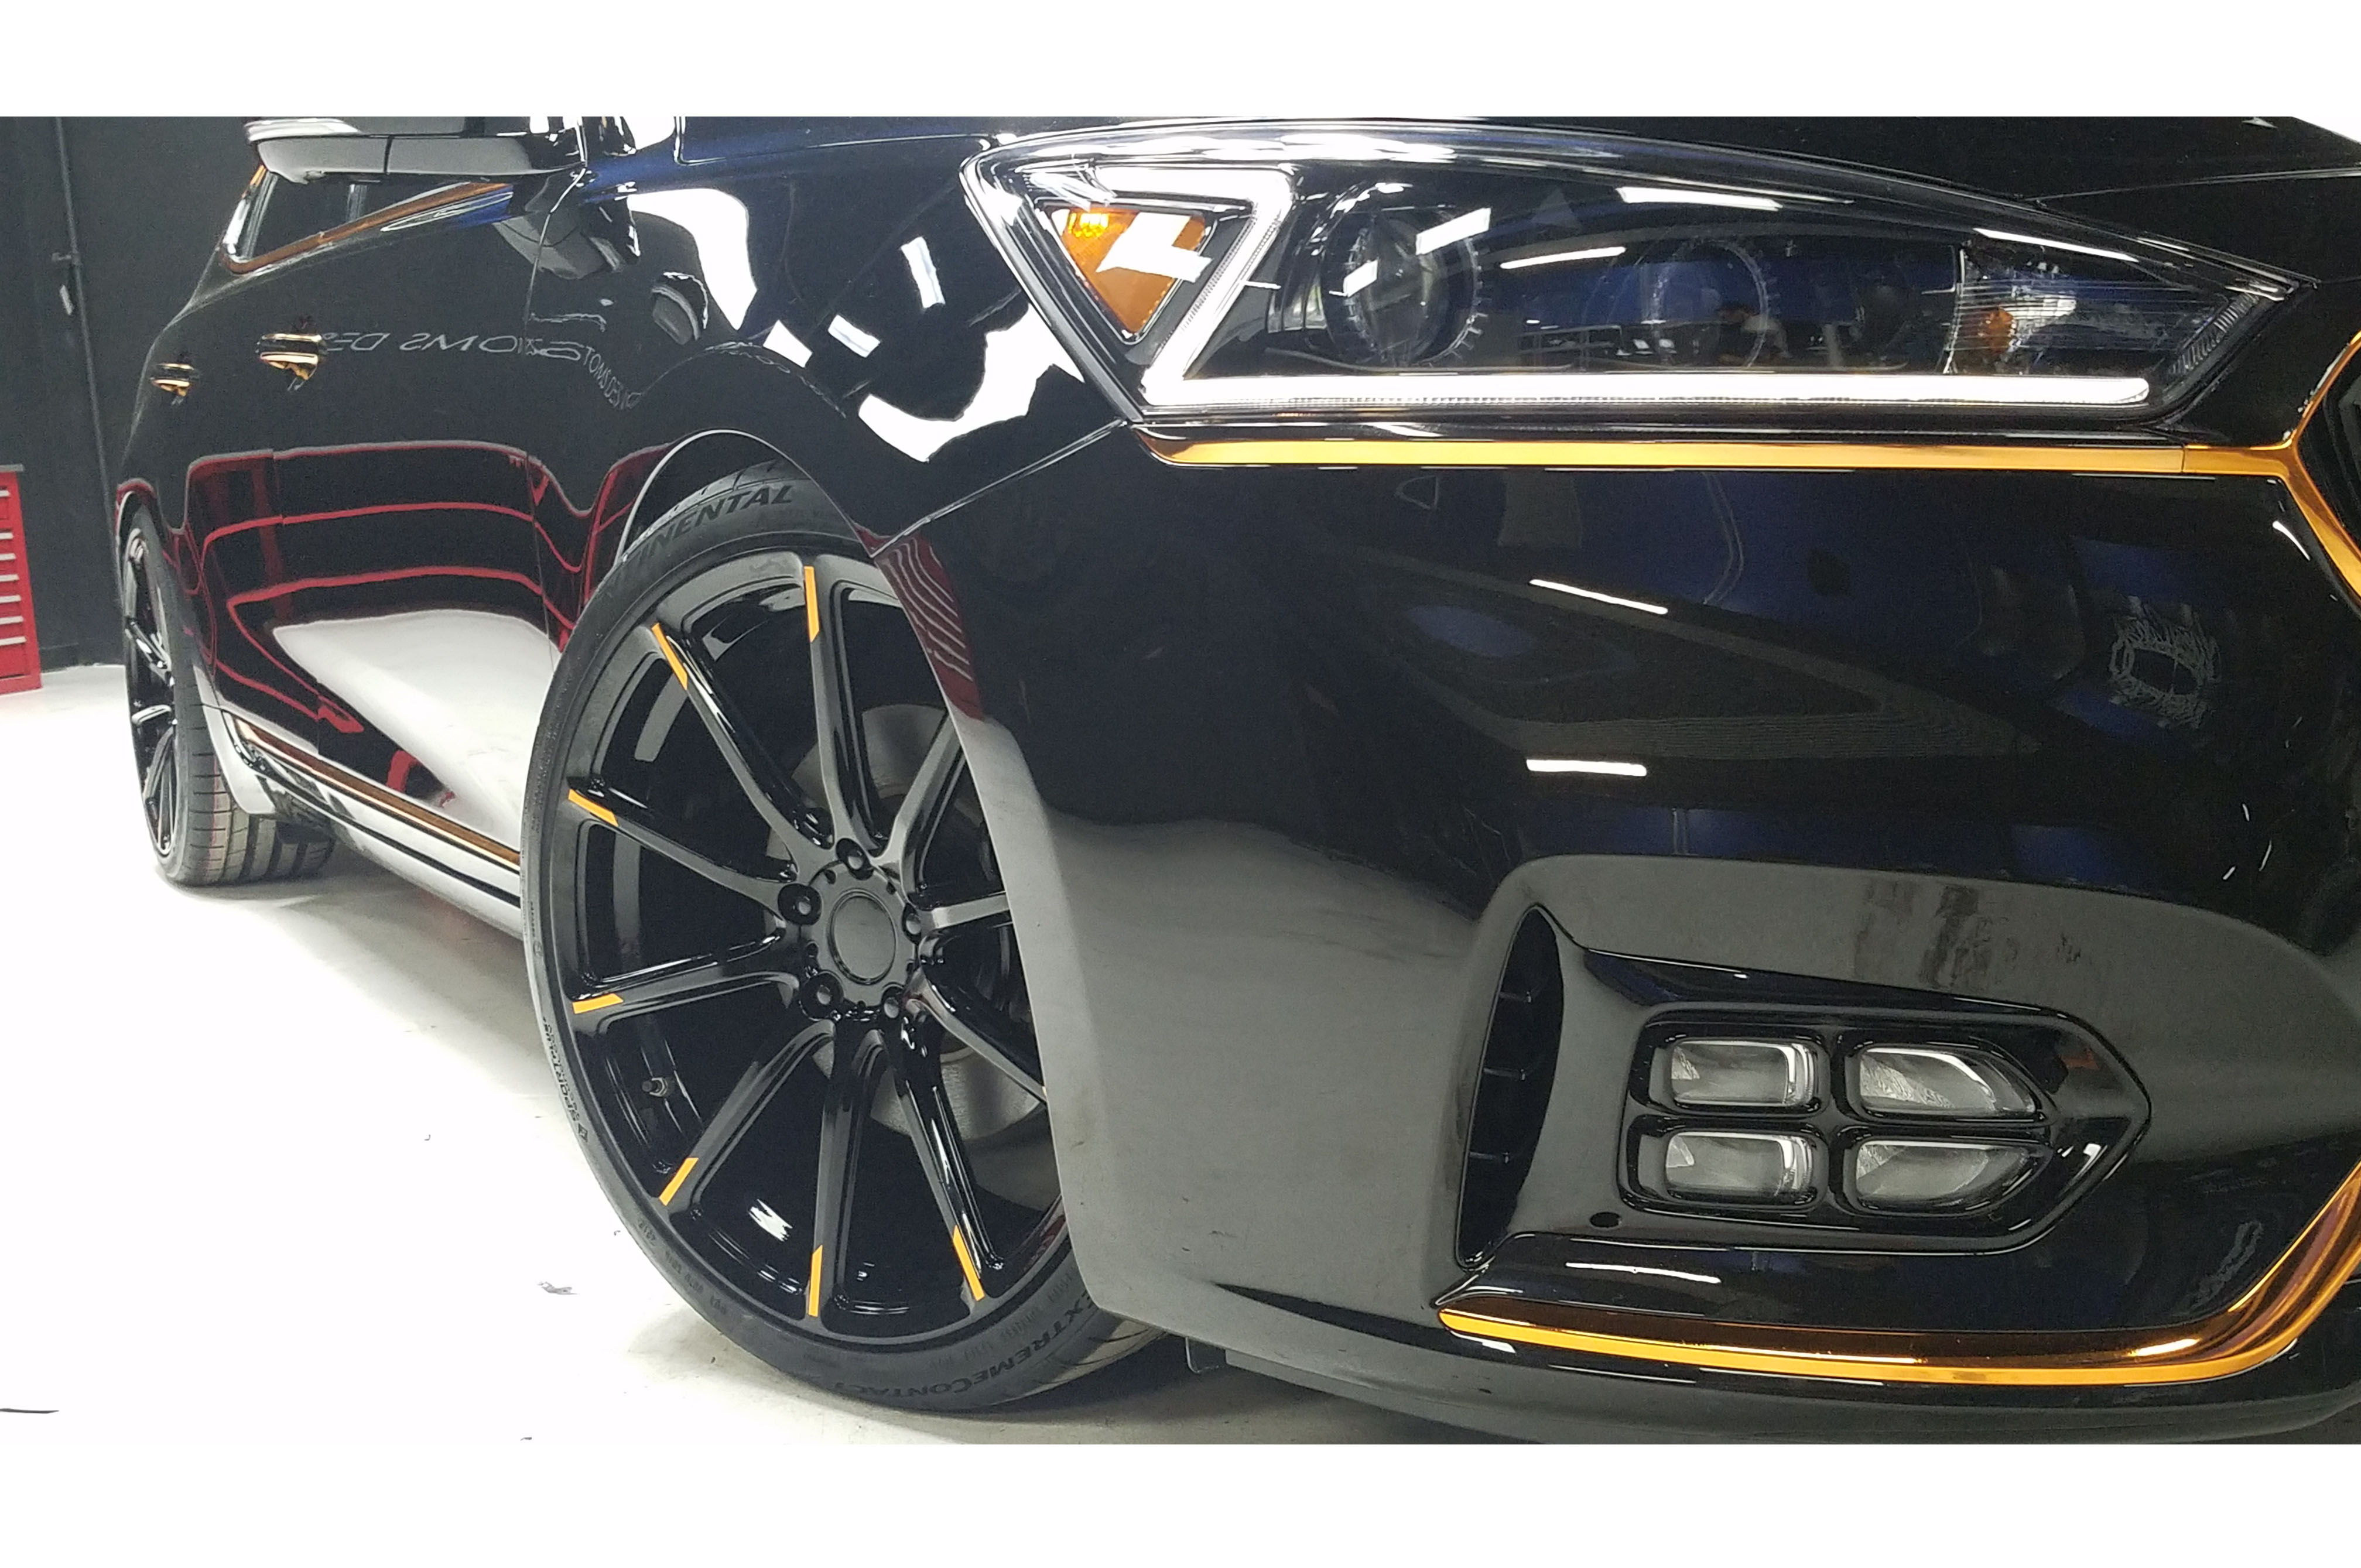 show customized cars two autos sema to brings gt automobile close up modied gets stinger kia cadenza magazine obsidian news gts more